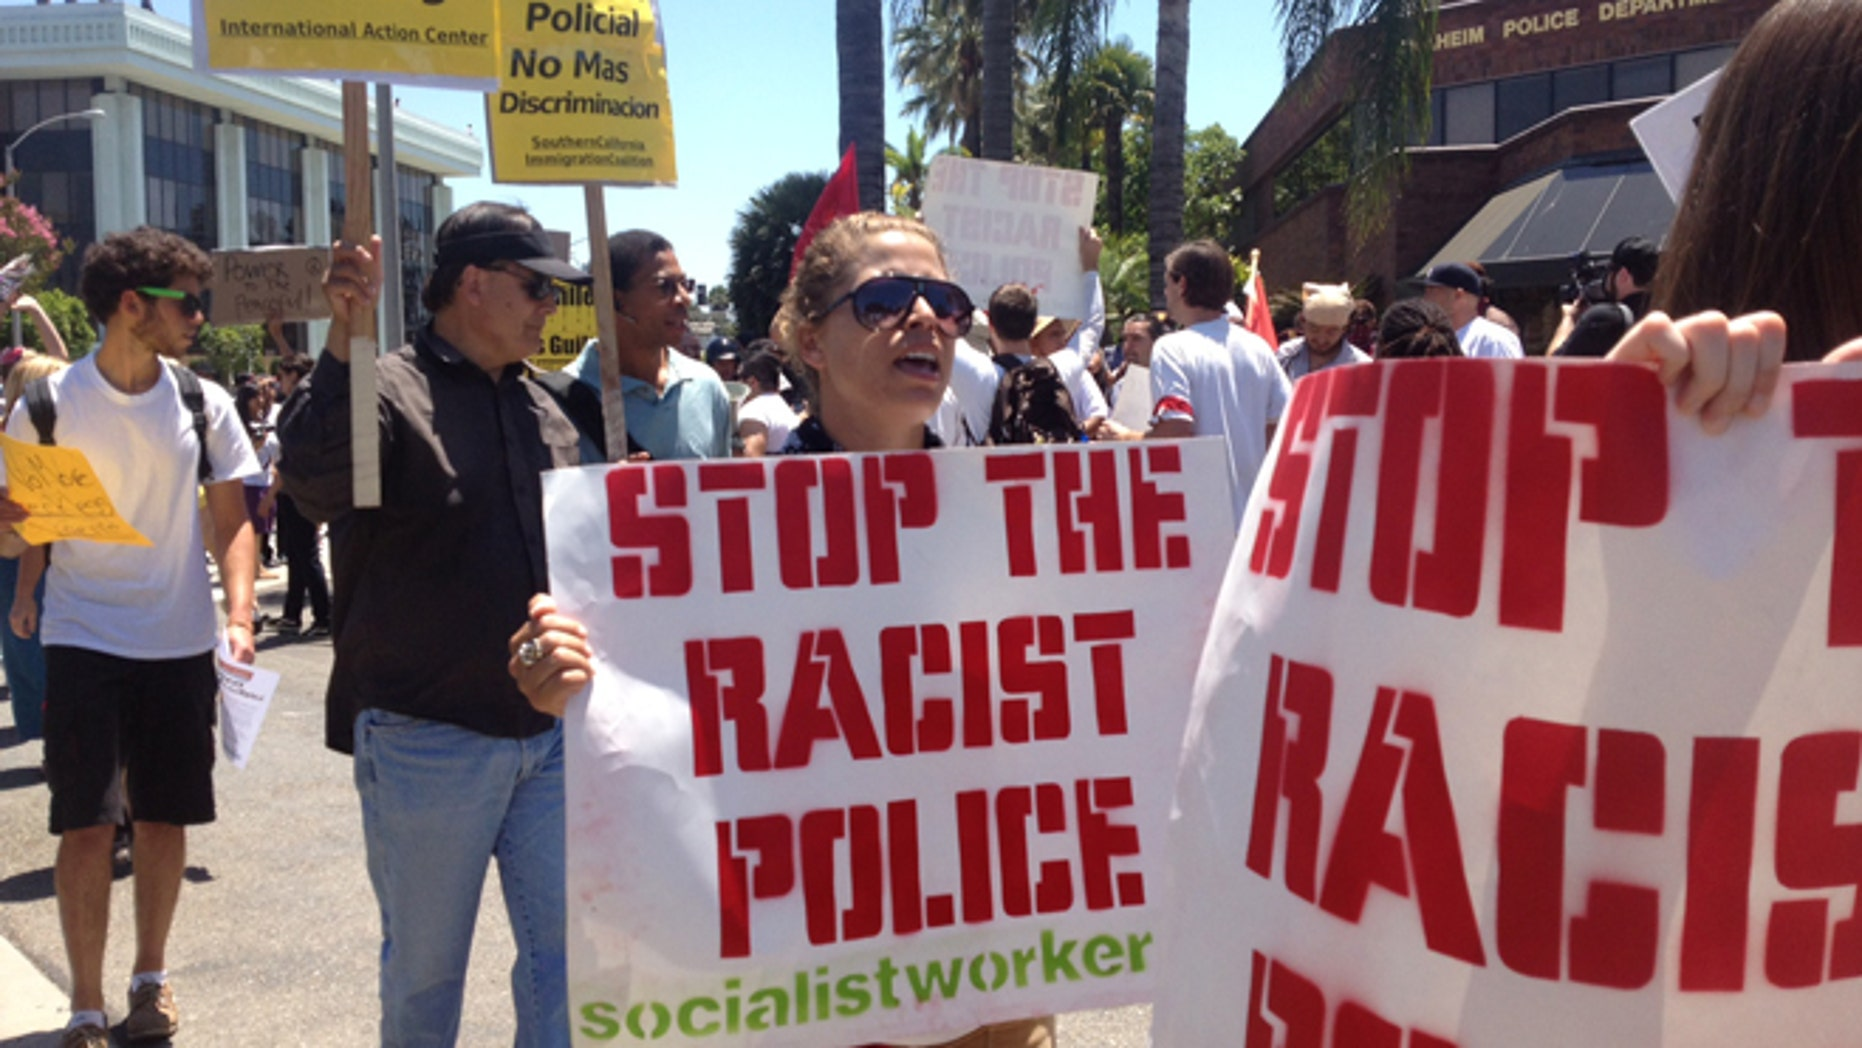 Demonstrators rallied to denounce two fatal police shootings and issue a call for community peace on July 29, 2013.